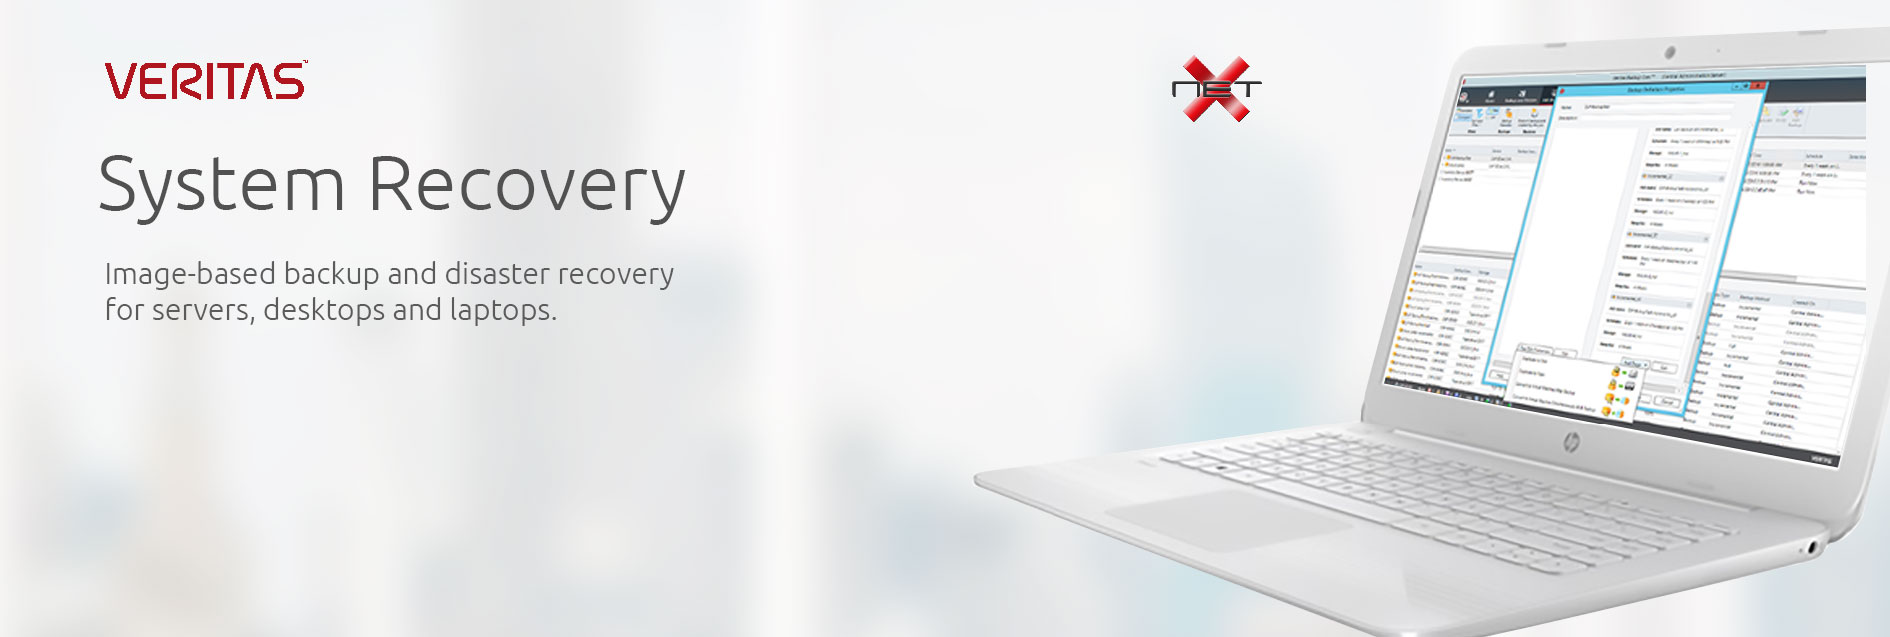 veritas system recovery with netx professional services banner